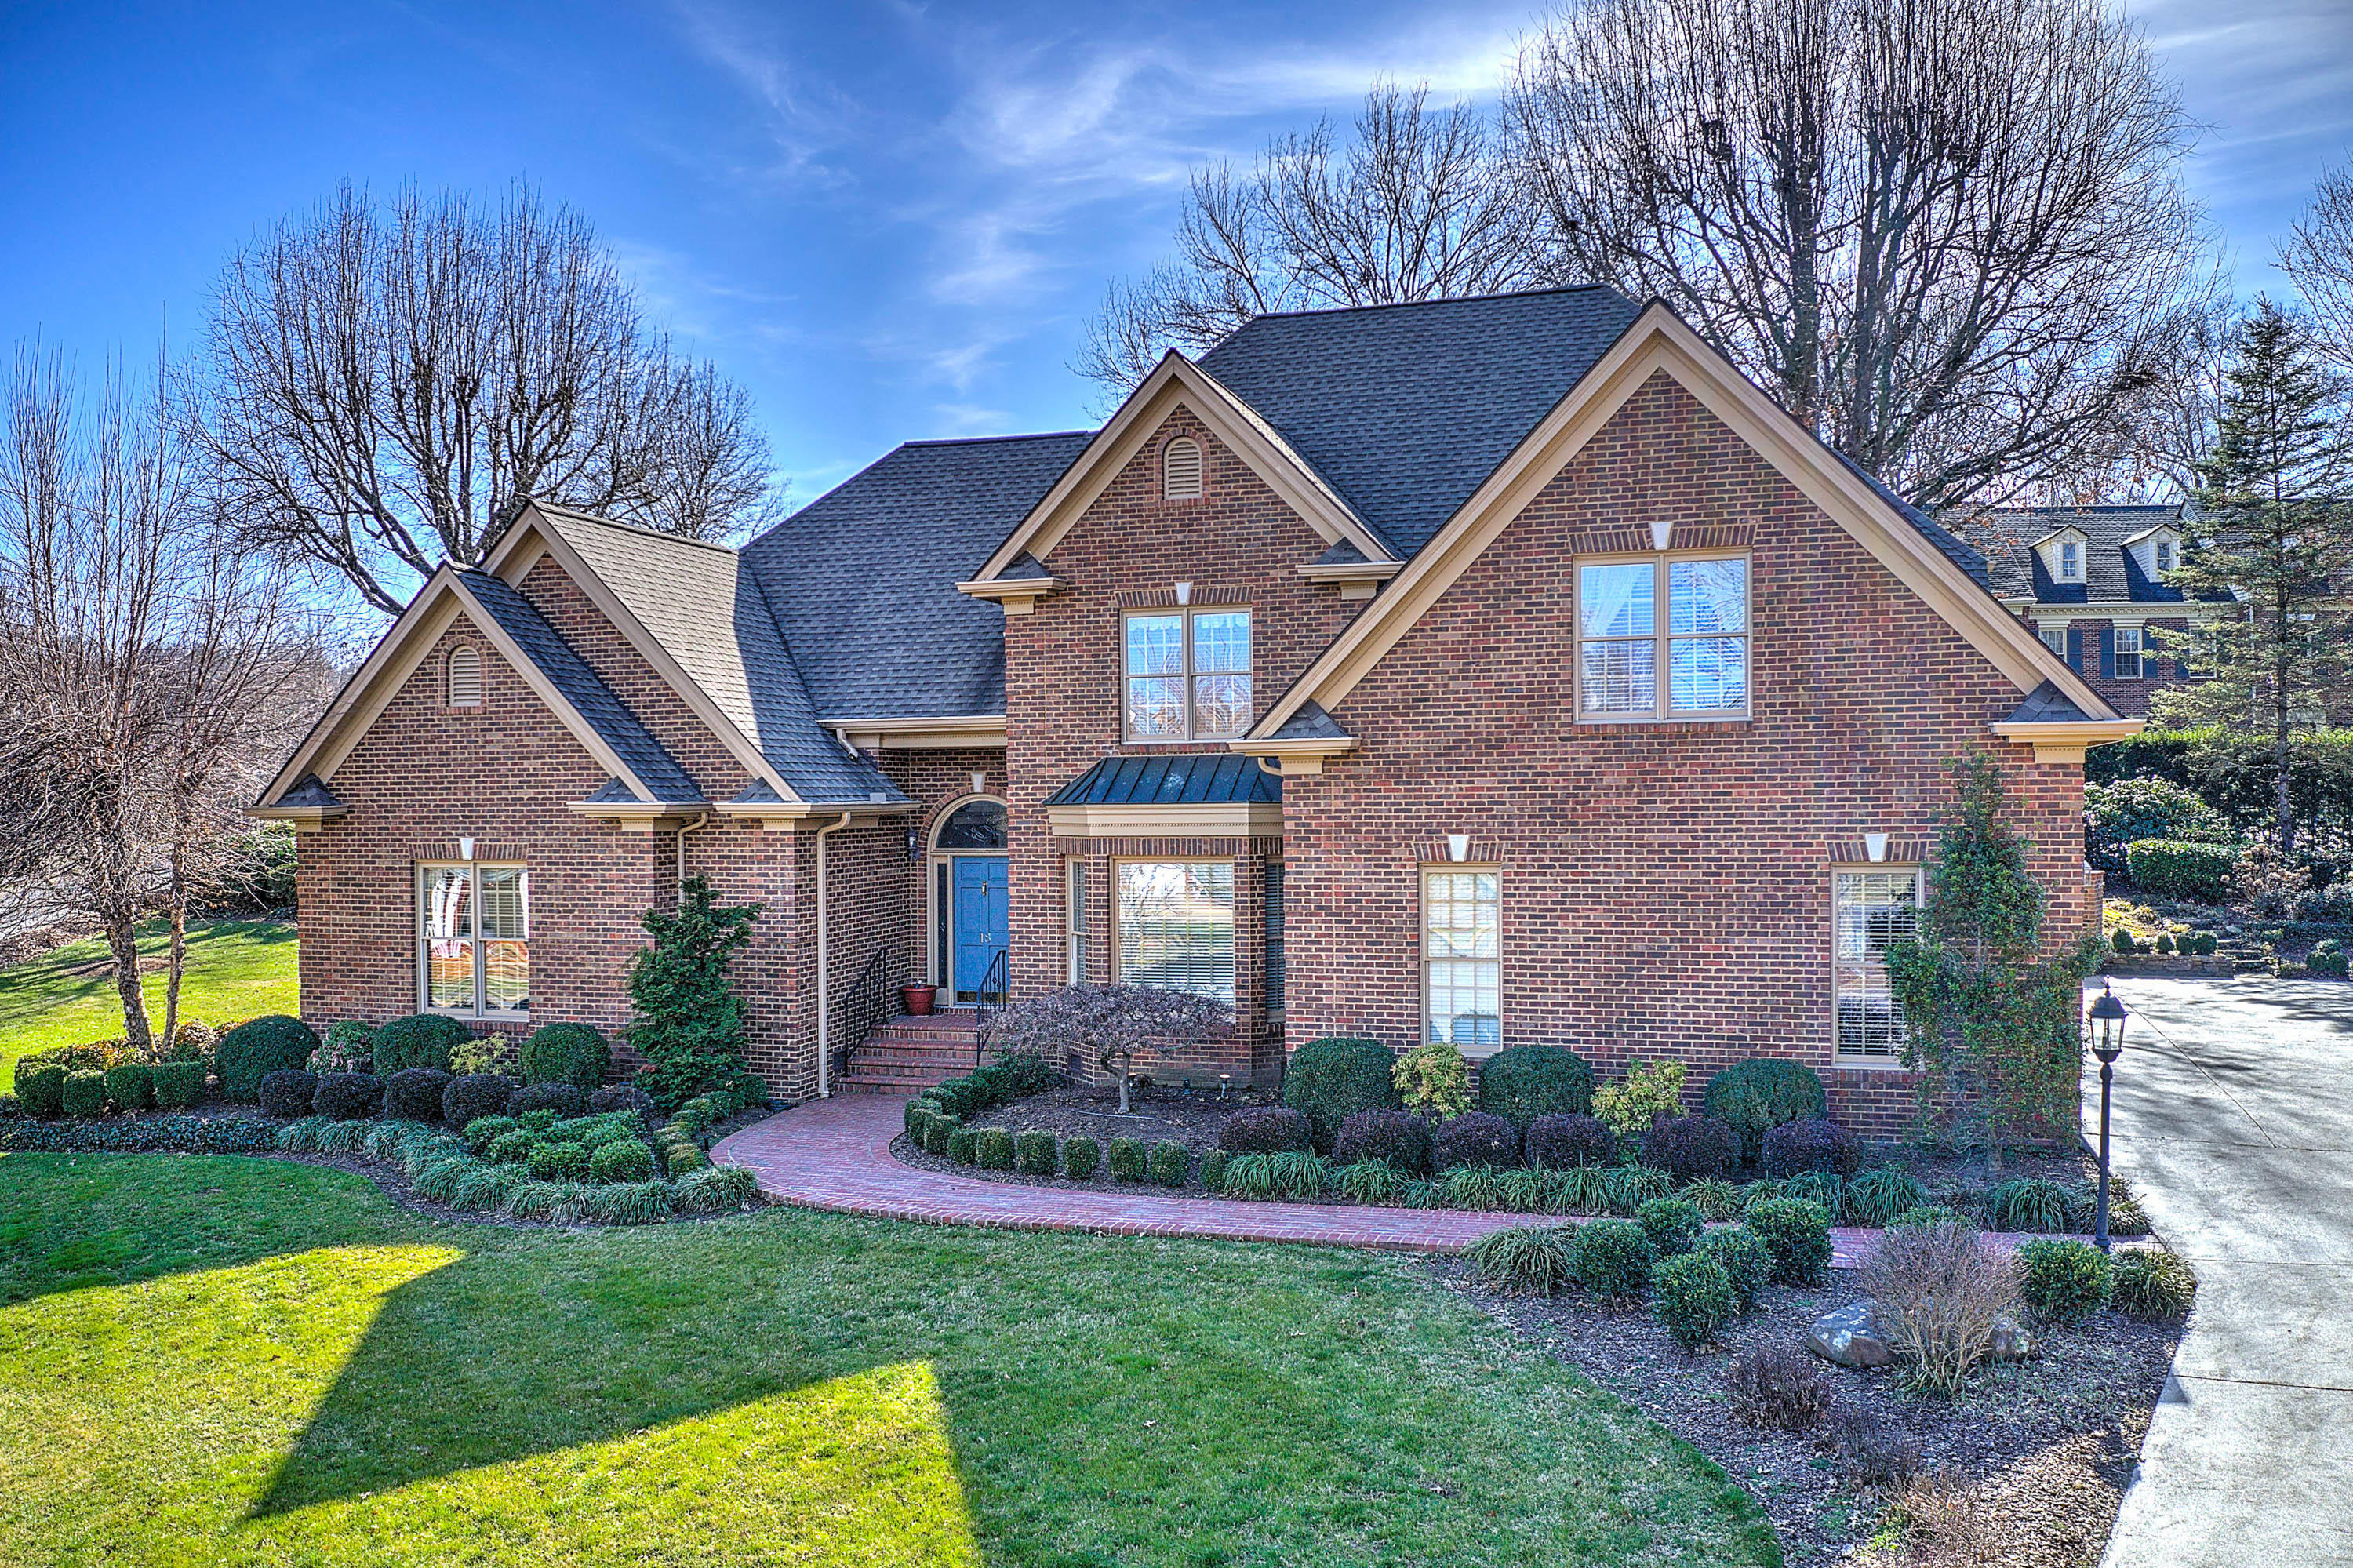 18 Cox Farm Court, Johnson City, Tennessee 37601, 5 Bedrooms Bedrooms, ,5 BathroomsBathrooms,Single Family,For Sale,18 Cox Farm Court,9919278